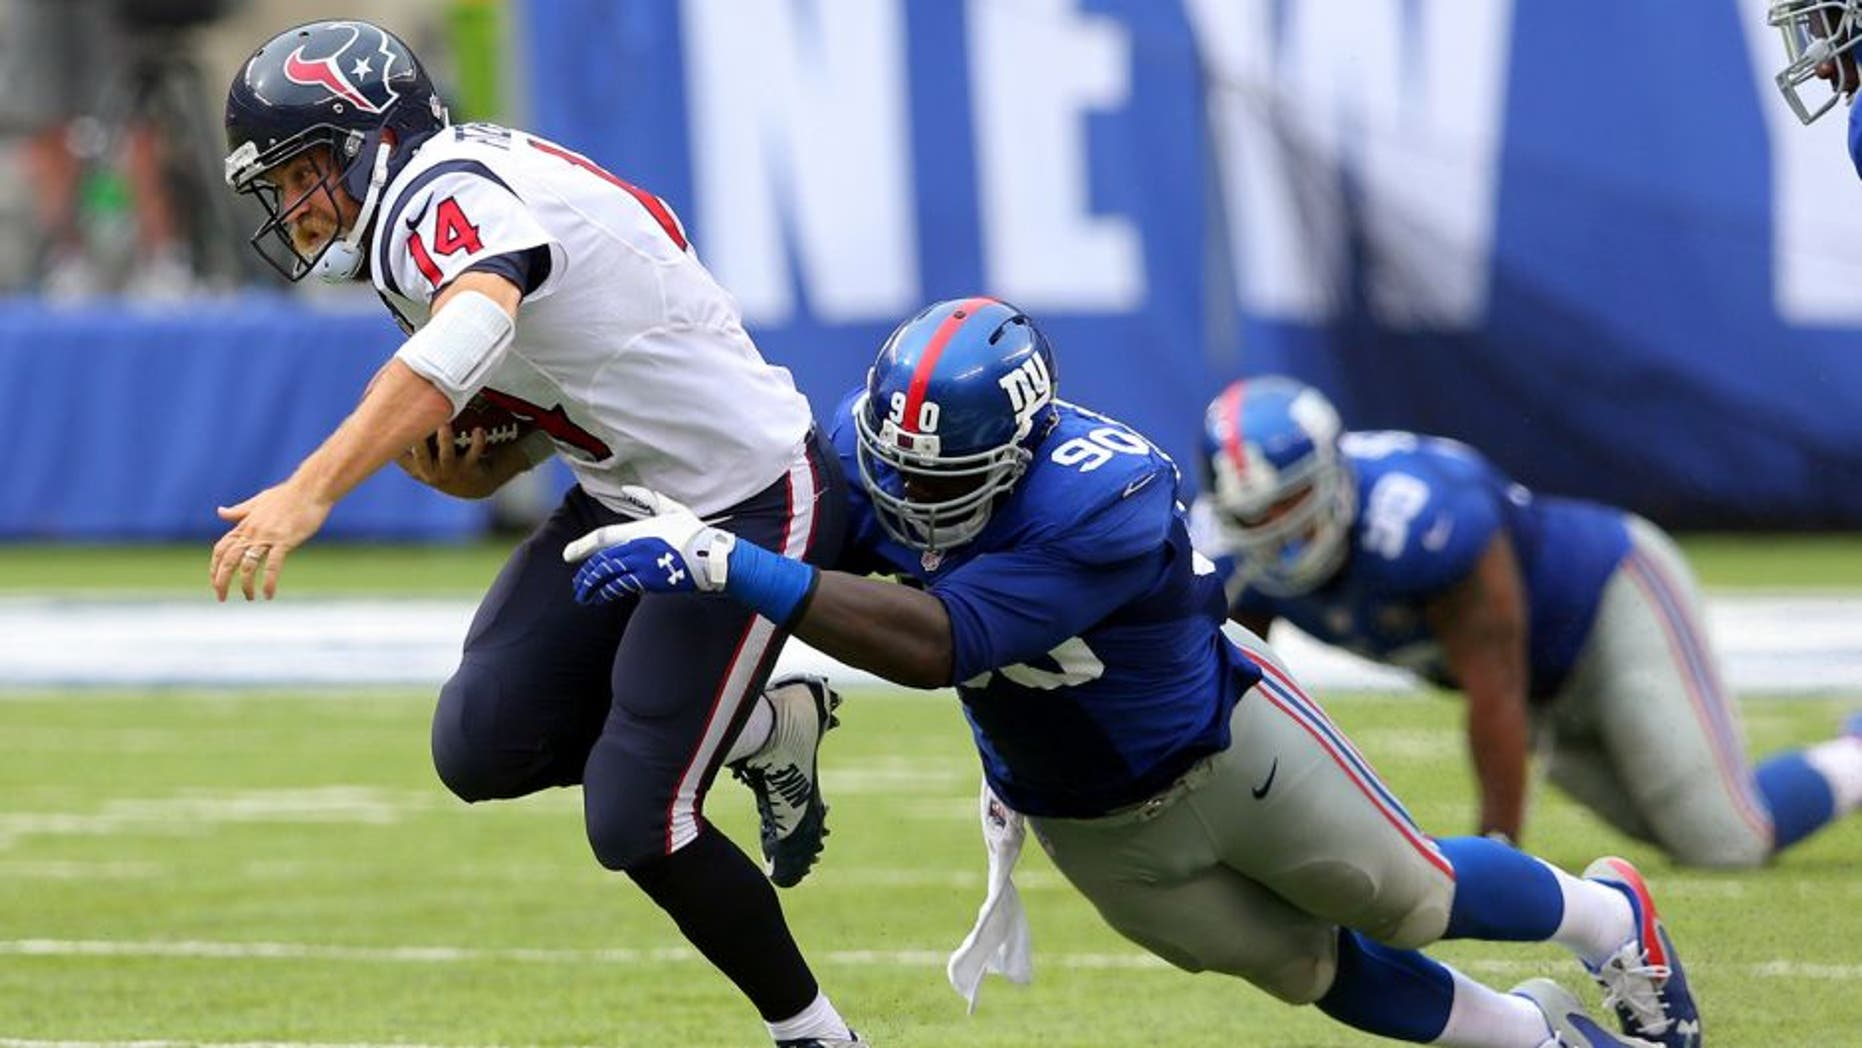 Sep 21, 2014; East Rutherford, NJ, USA; Houston Texans quarterback Ryan Fitzpatrick (14) is brought down by New York Giants defensive end Jason Pierre-Paul (90) during the fourth quarter at MetLife Stadium. Mandatory Credit: Brad Penner-USA TODAY Sports